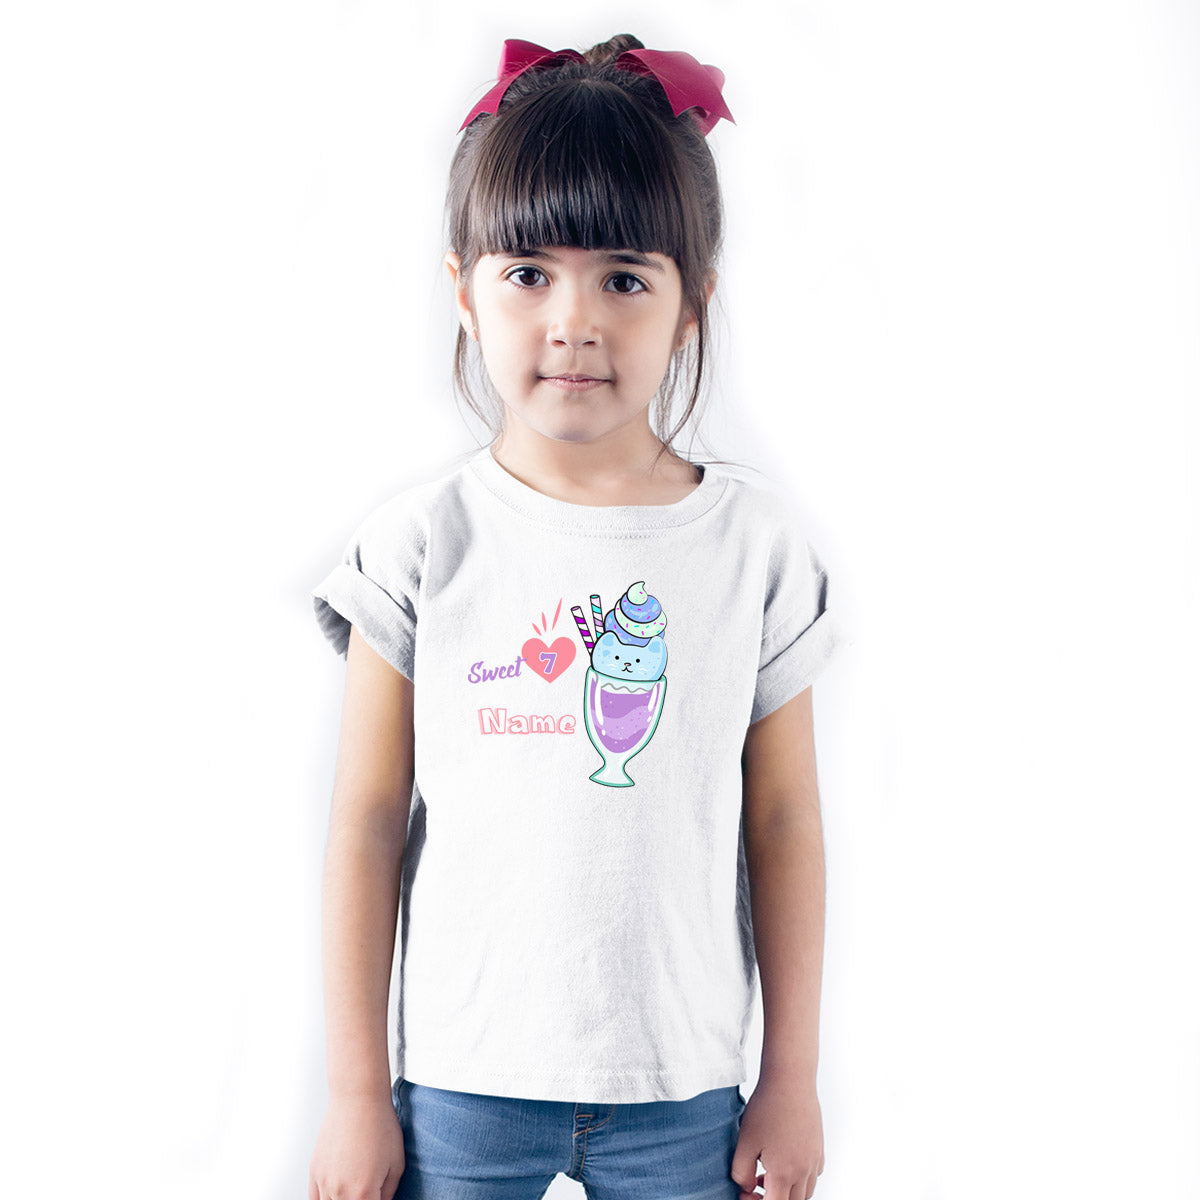 Sprinklecart Personalized Sweet 7 Poly-Cotton T Shirt Wear for Your Kid (White)